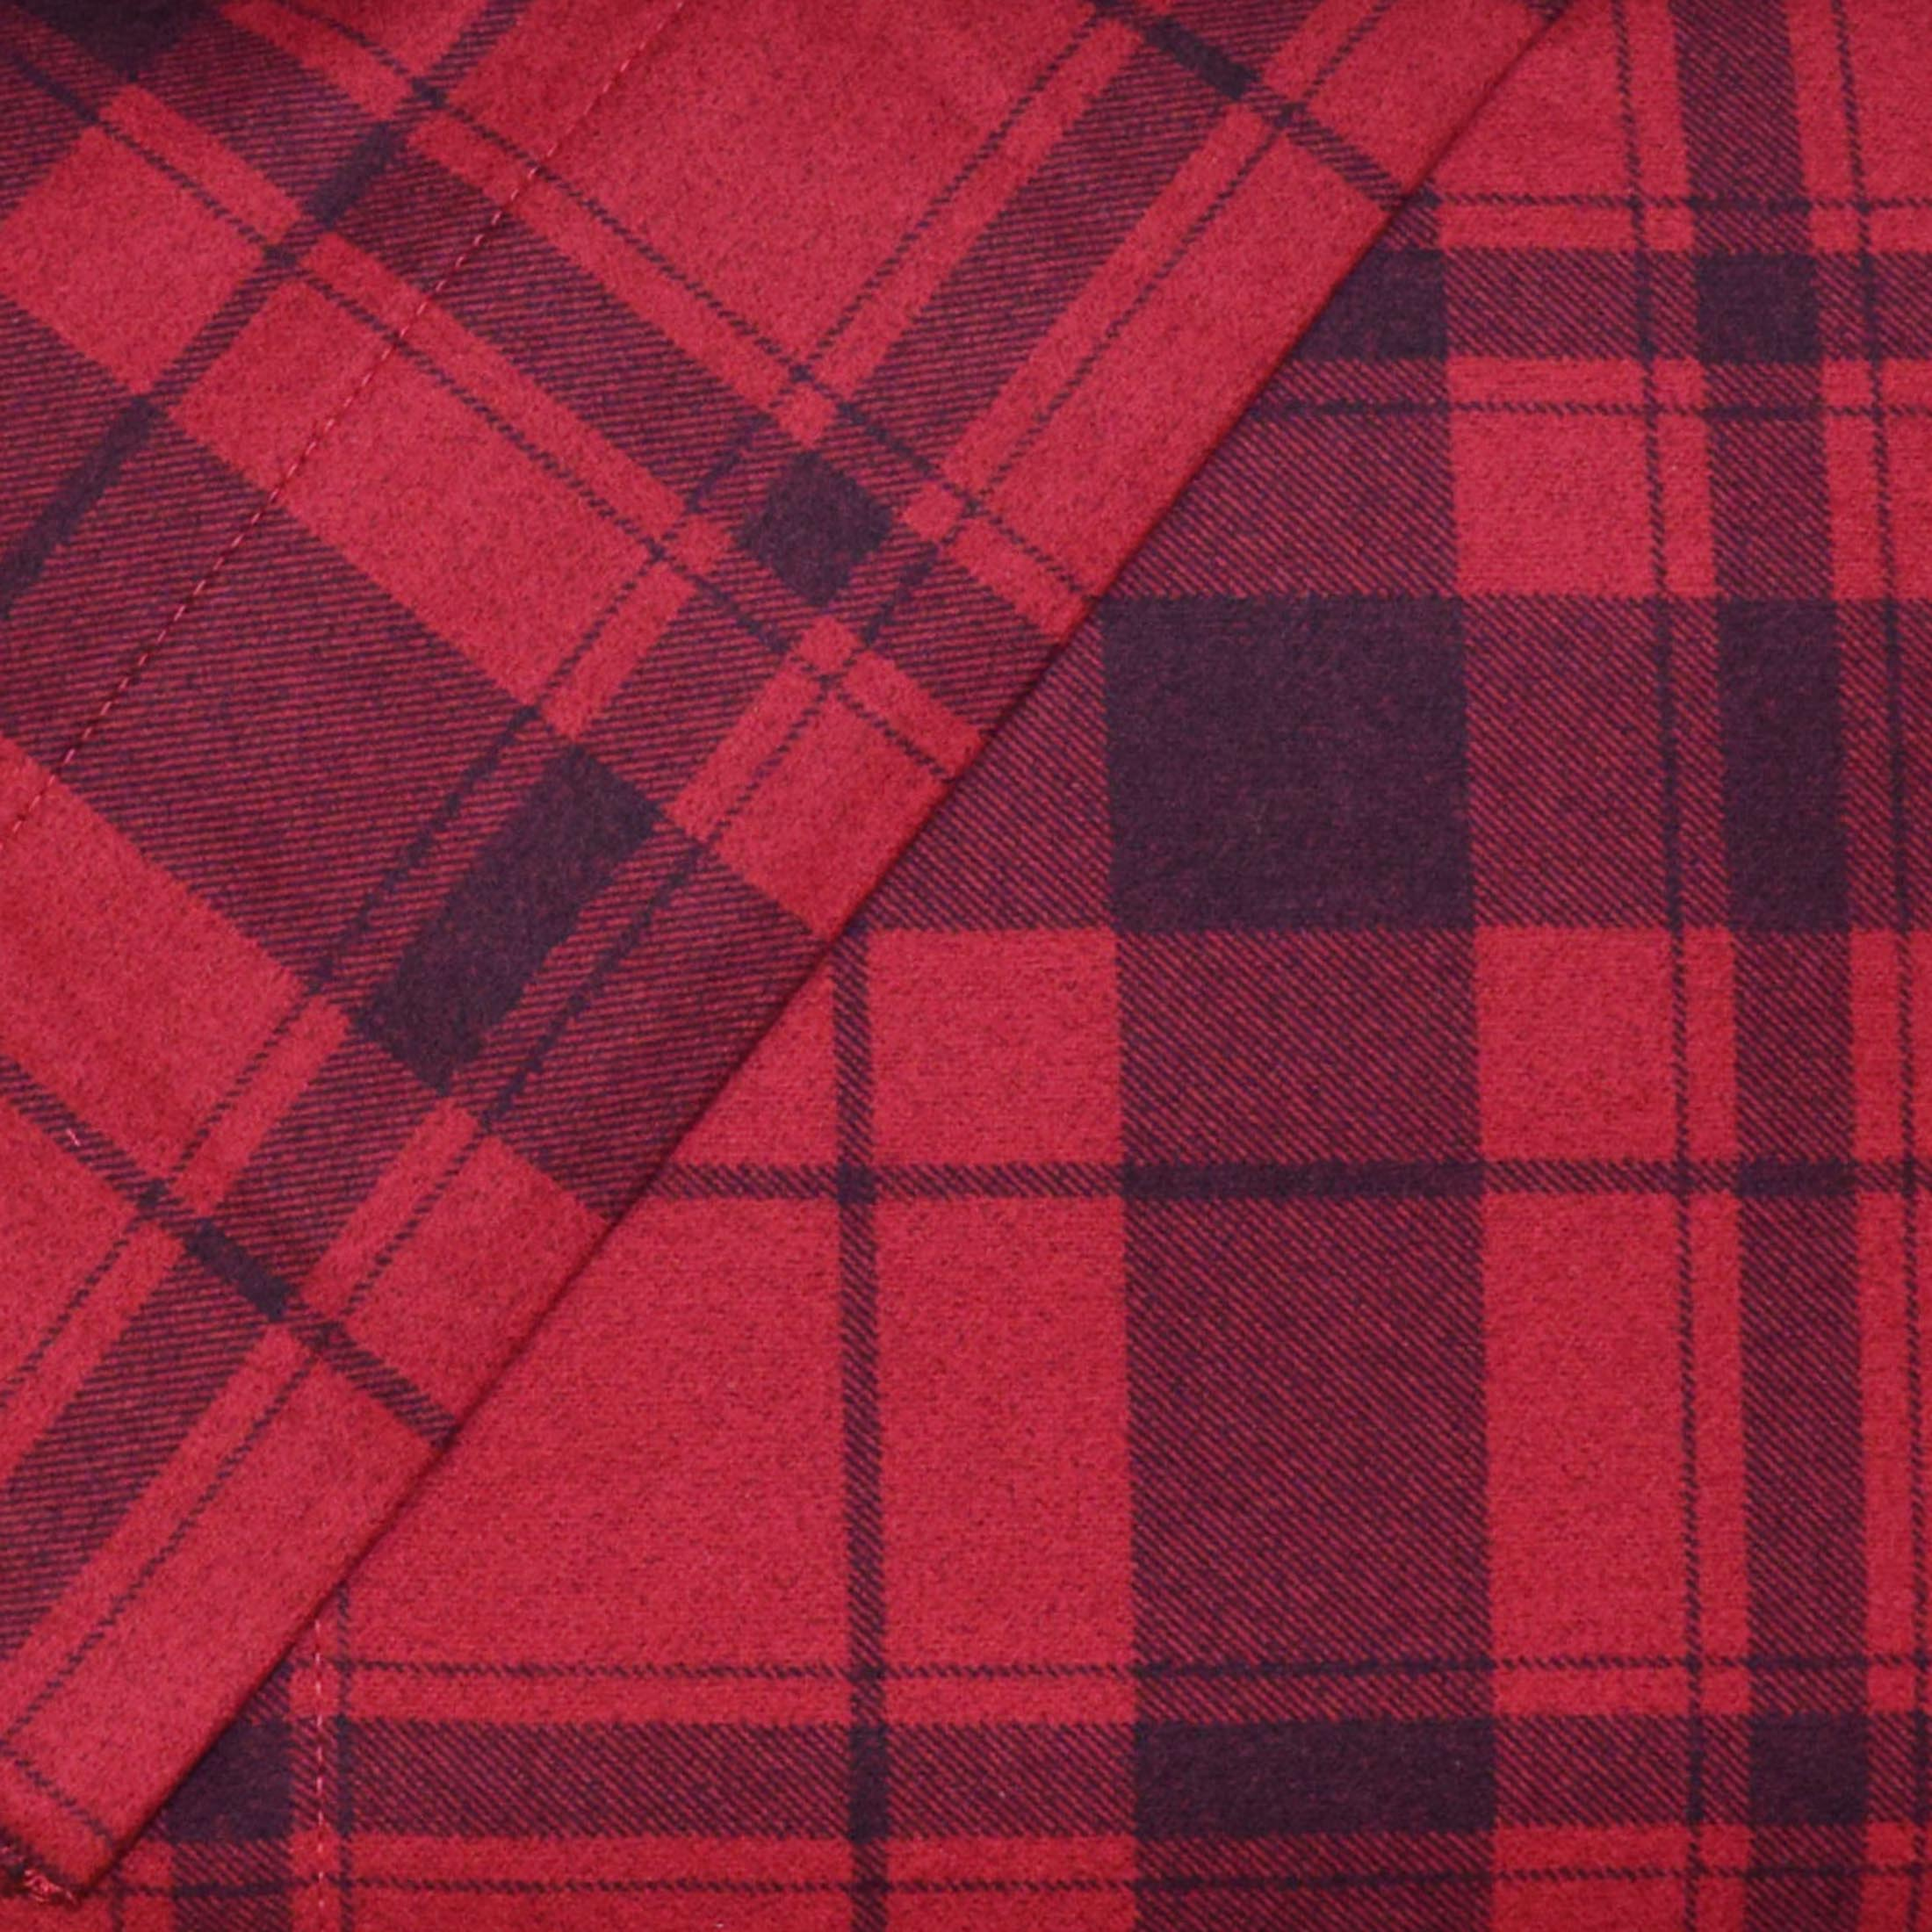 Cuddl Duds Heavyweight Cotton Flannel Gray Red Plaid Queen Sheet Set New